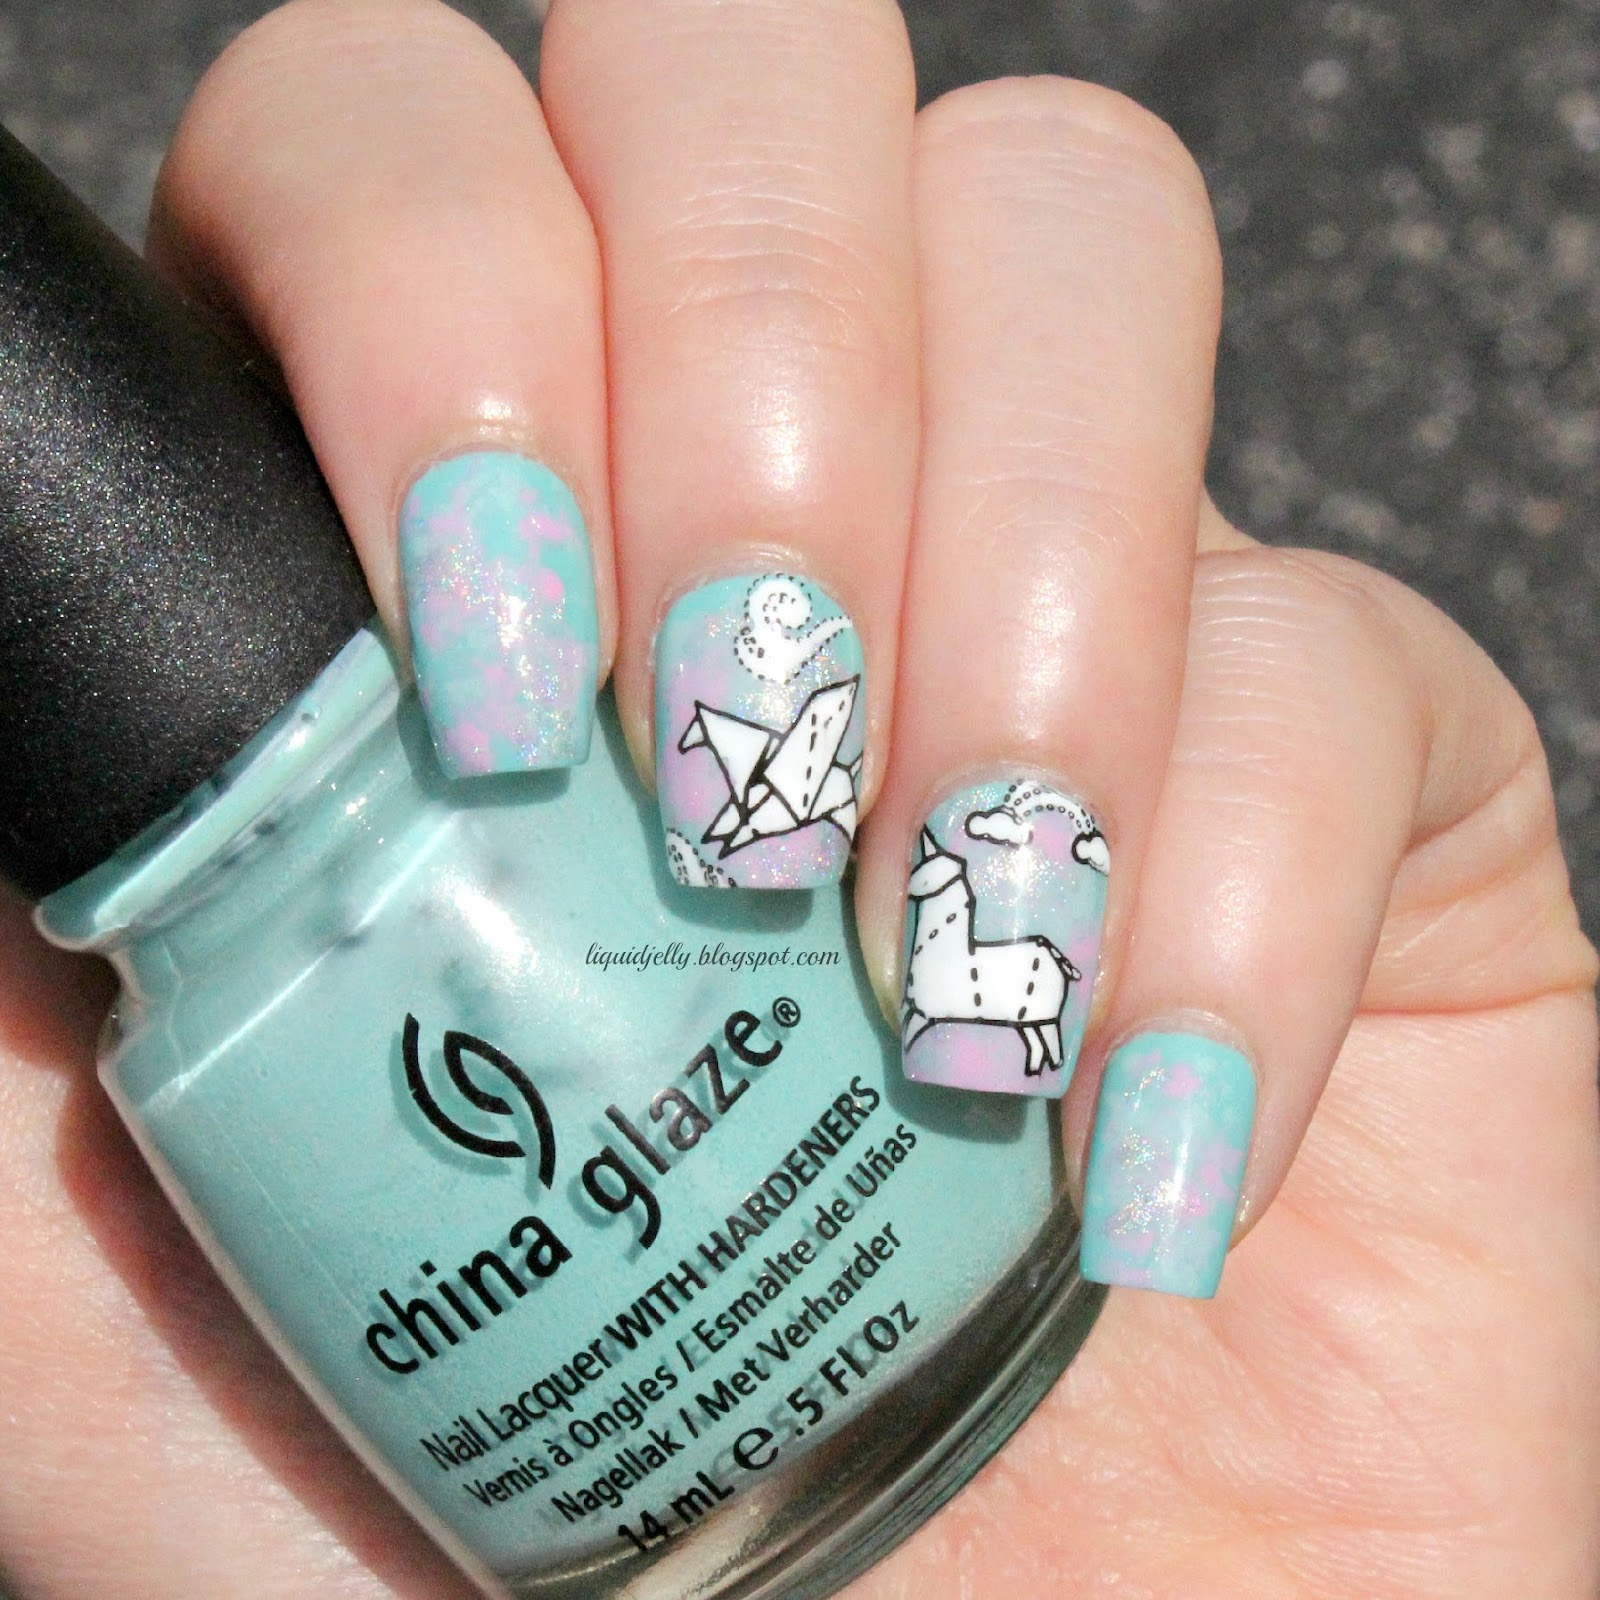 Liquid jelly nail art moyou london origami 05 i did this mani a while ago and actually got to wear it for a few days i really love the cute origami designs moyou london has come out with prinsesfo Images